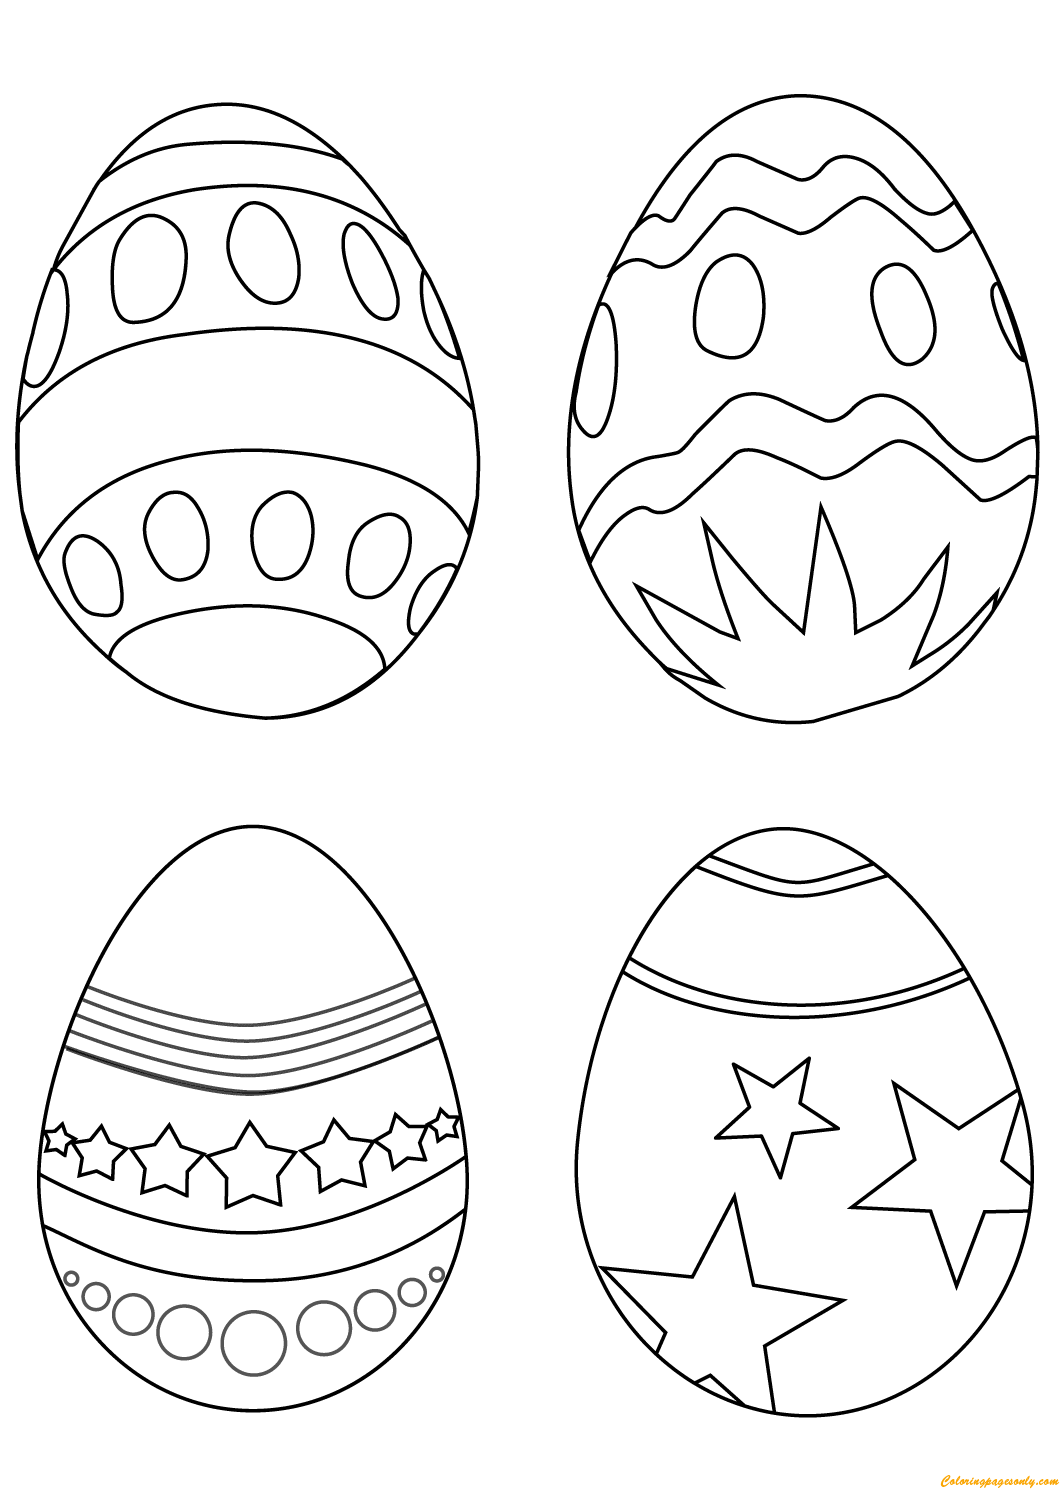 Simple Easter Eggs Coloring Page Free Coloring Pages Online